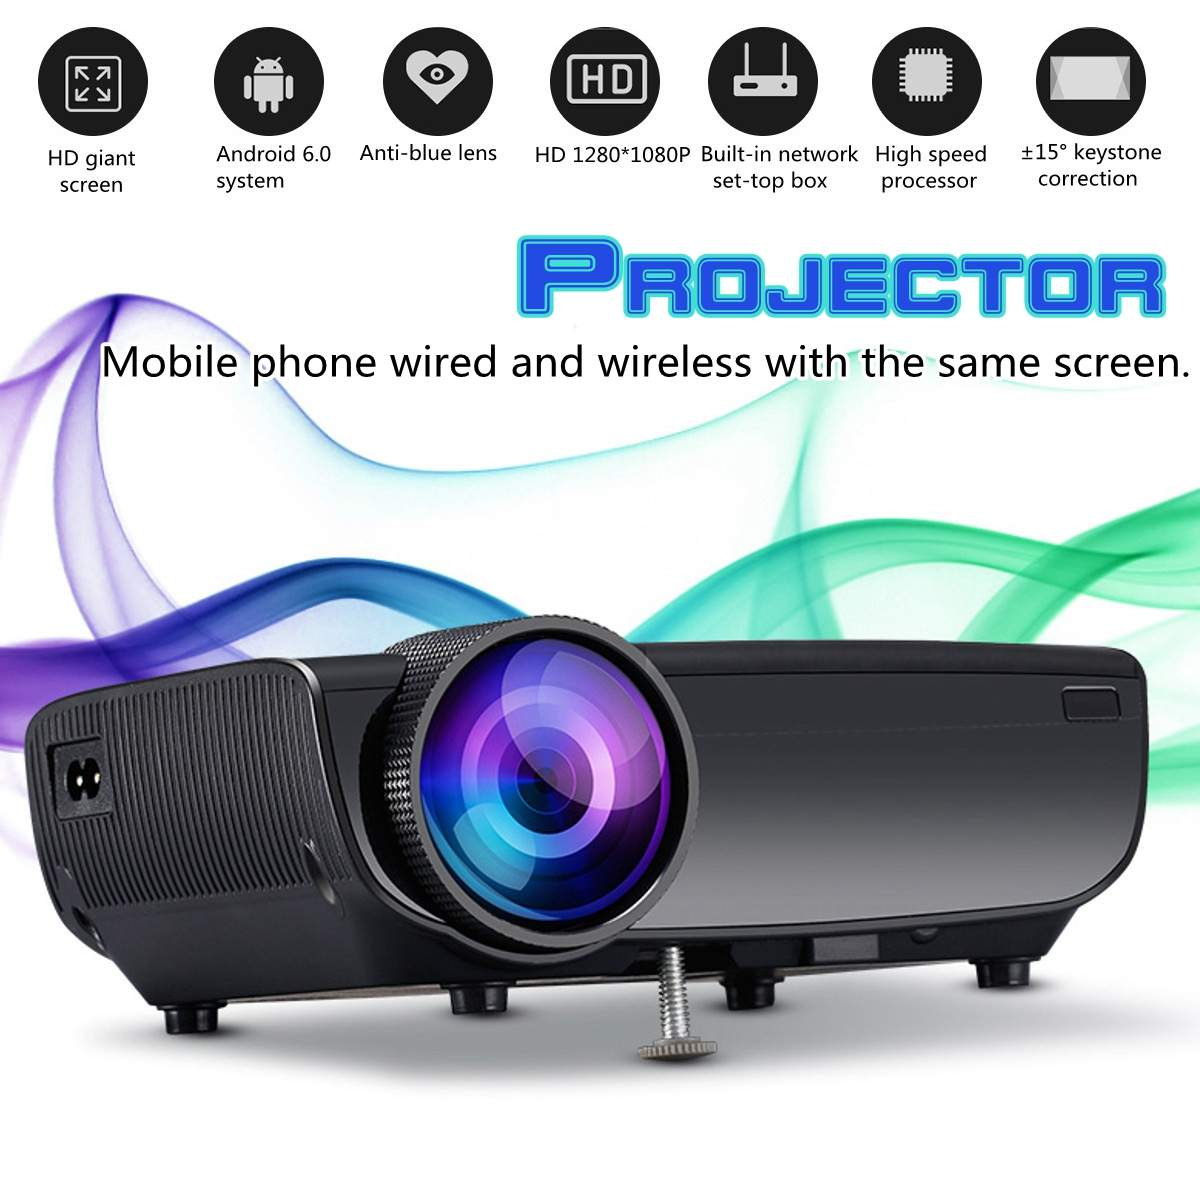 1080P Home LED Projector Remote Control Keystones Correction 0.8M-3.8M  Image Full HD Projector1080P Home LED Projector Remote Control Keystones Correction 0.8M-3.8M  Image Full HD Projector